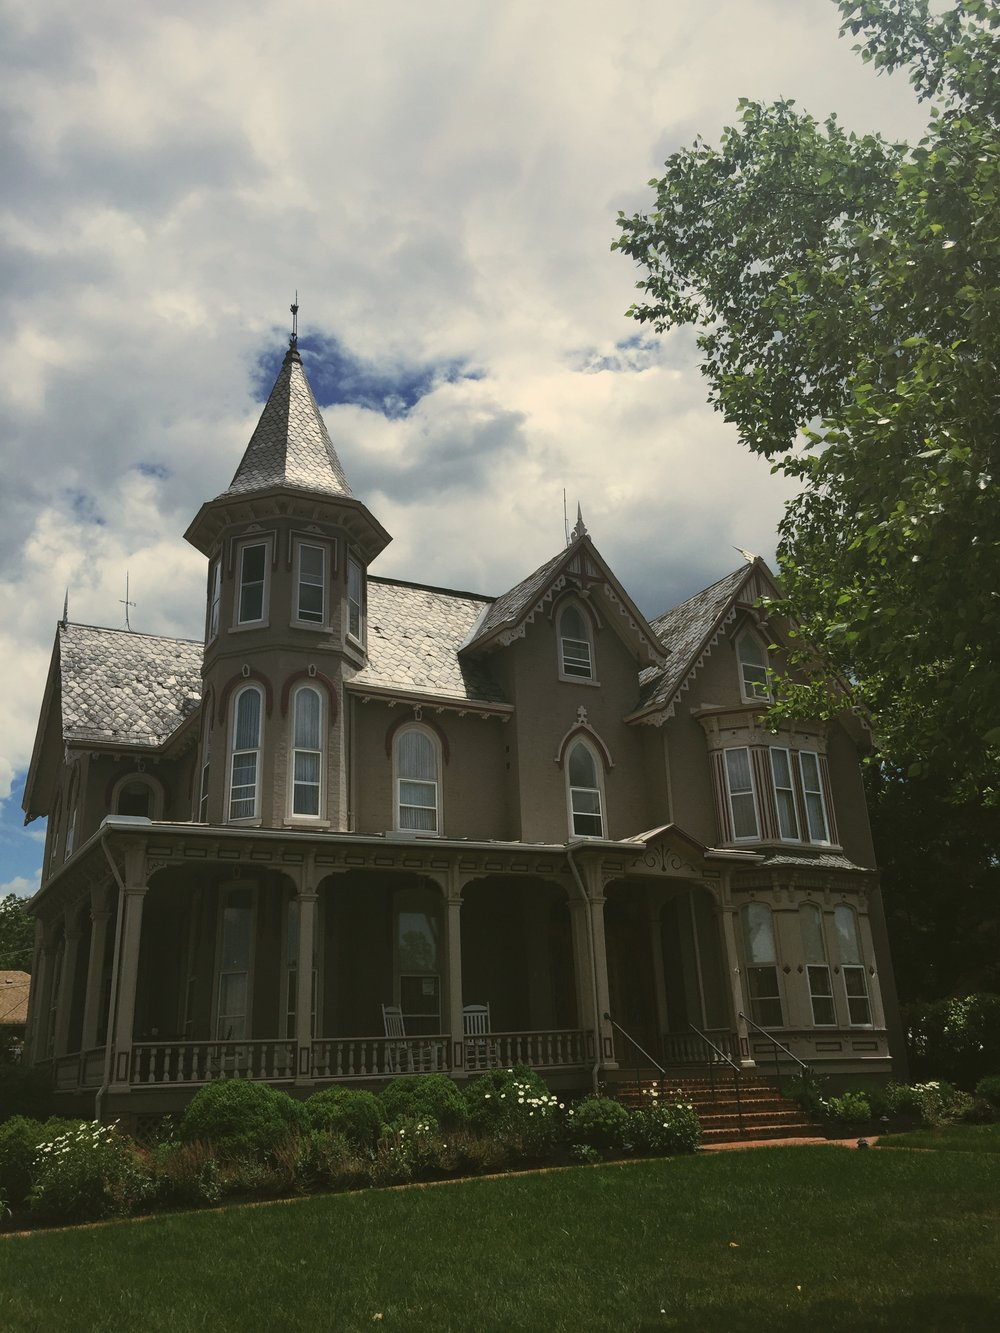 Lovely Victorian architecture of Harrisonburg, VA. We noticed homes were adorned with charming labels such as